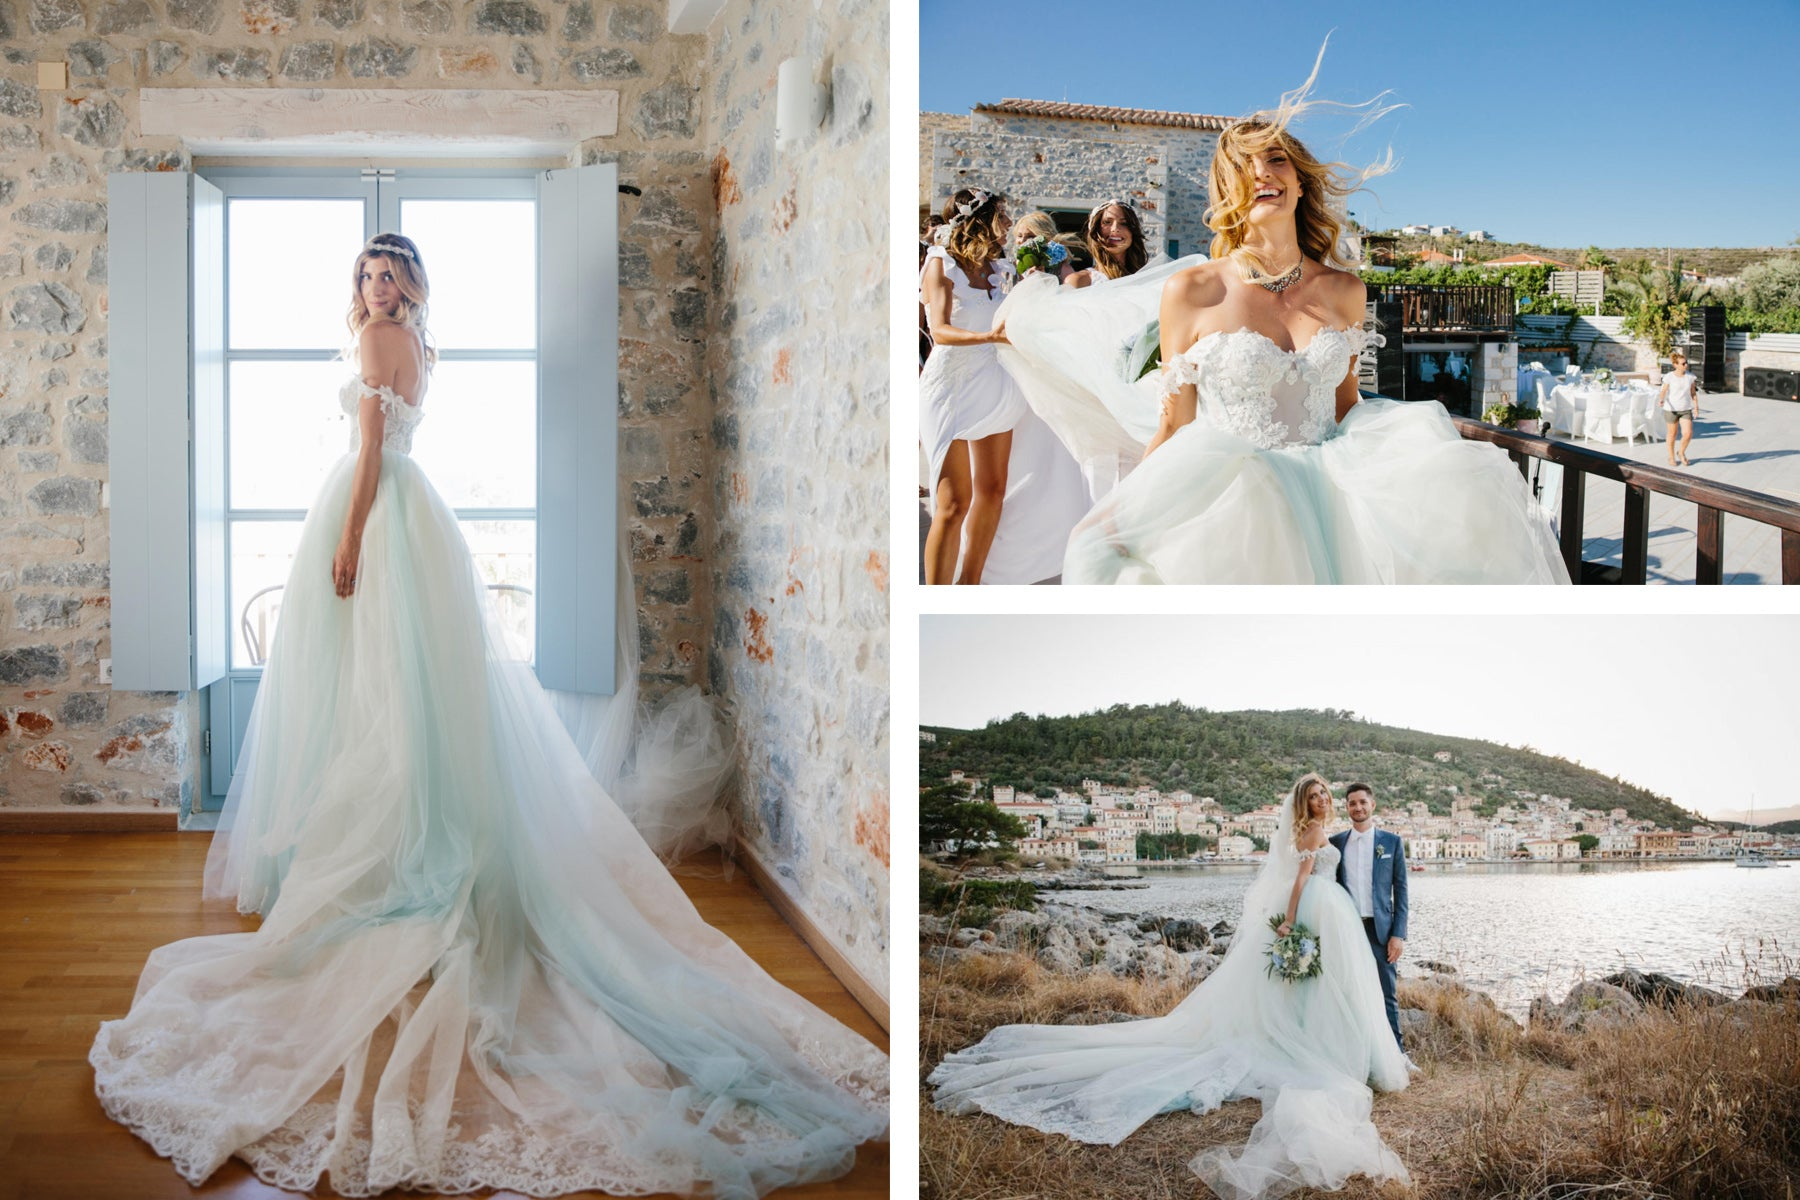 Eternal_Bridal_Bride_Crush_Top_5_Galia_Lahav_Brides_Ariana_2